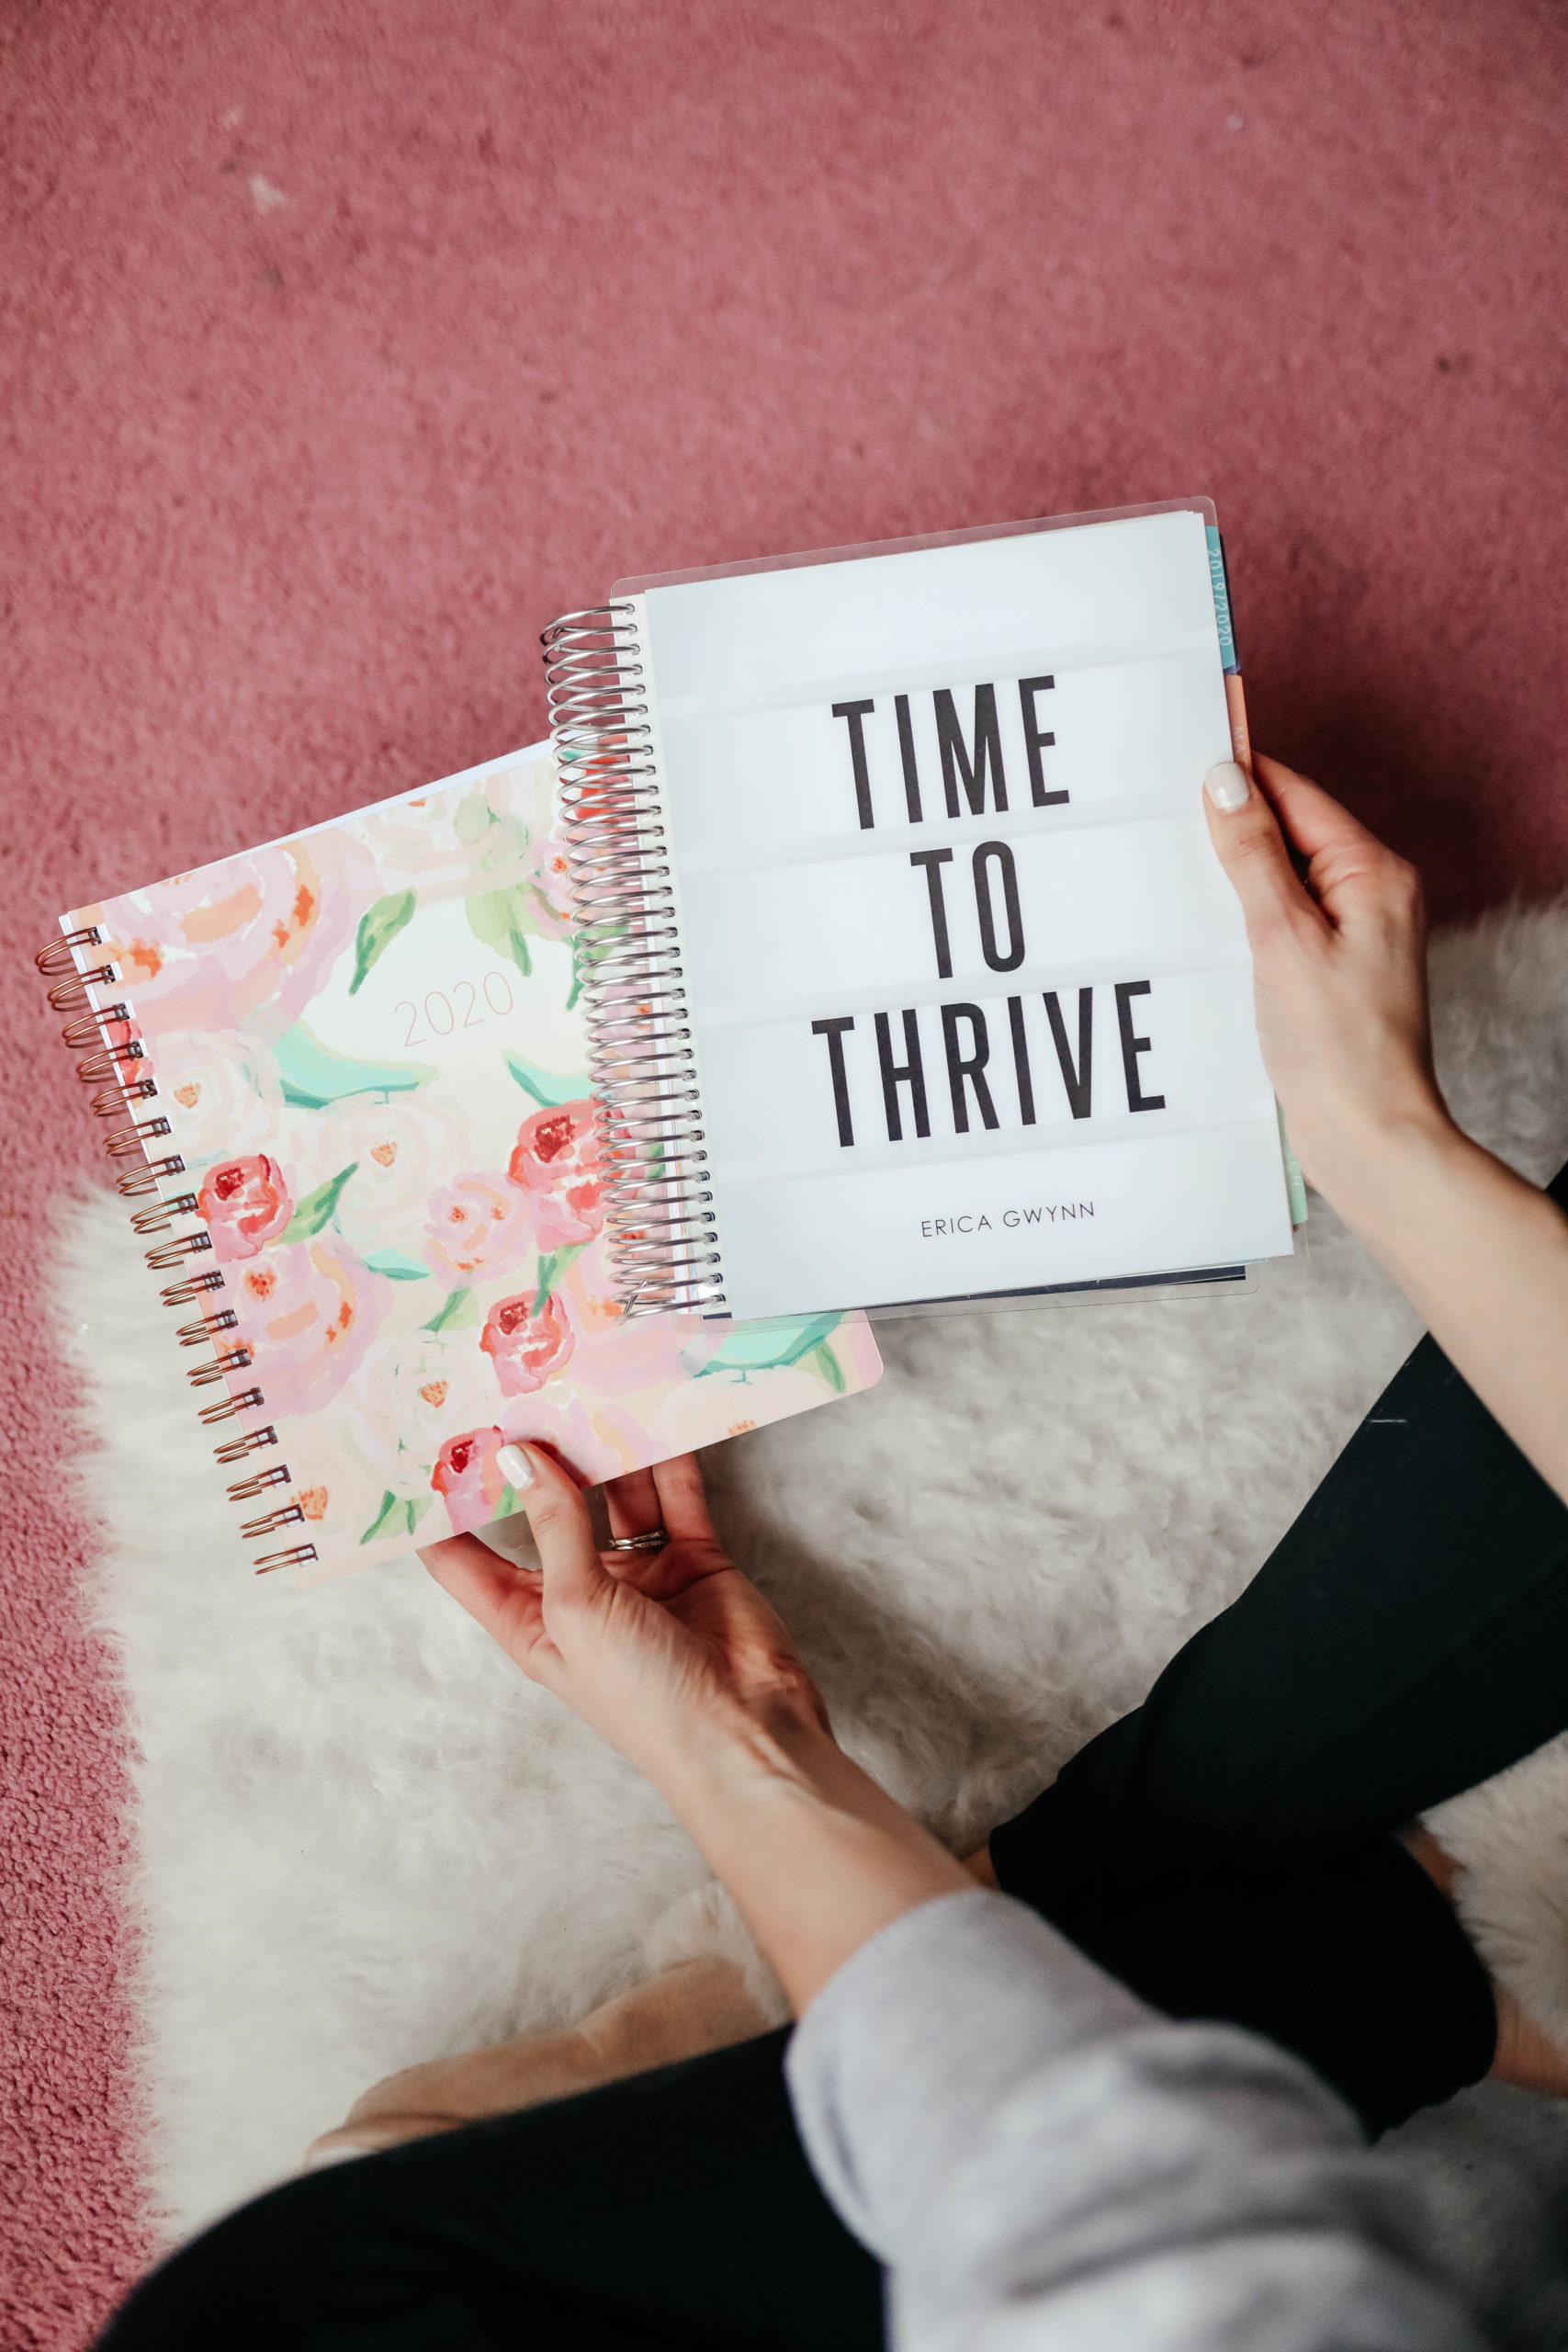 Cool Sh*t I Lovelovelove - Monthly Favorites, January 2020 on Coming Up Roses - Erin Condren planner